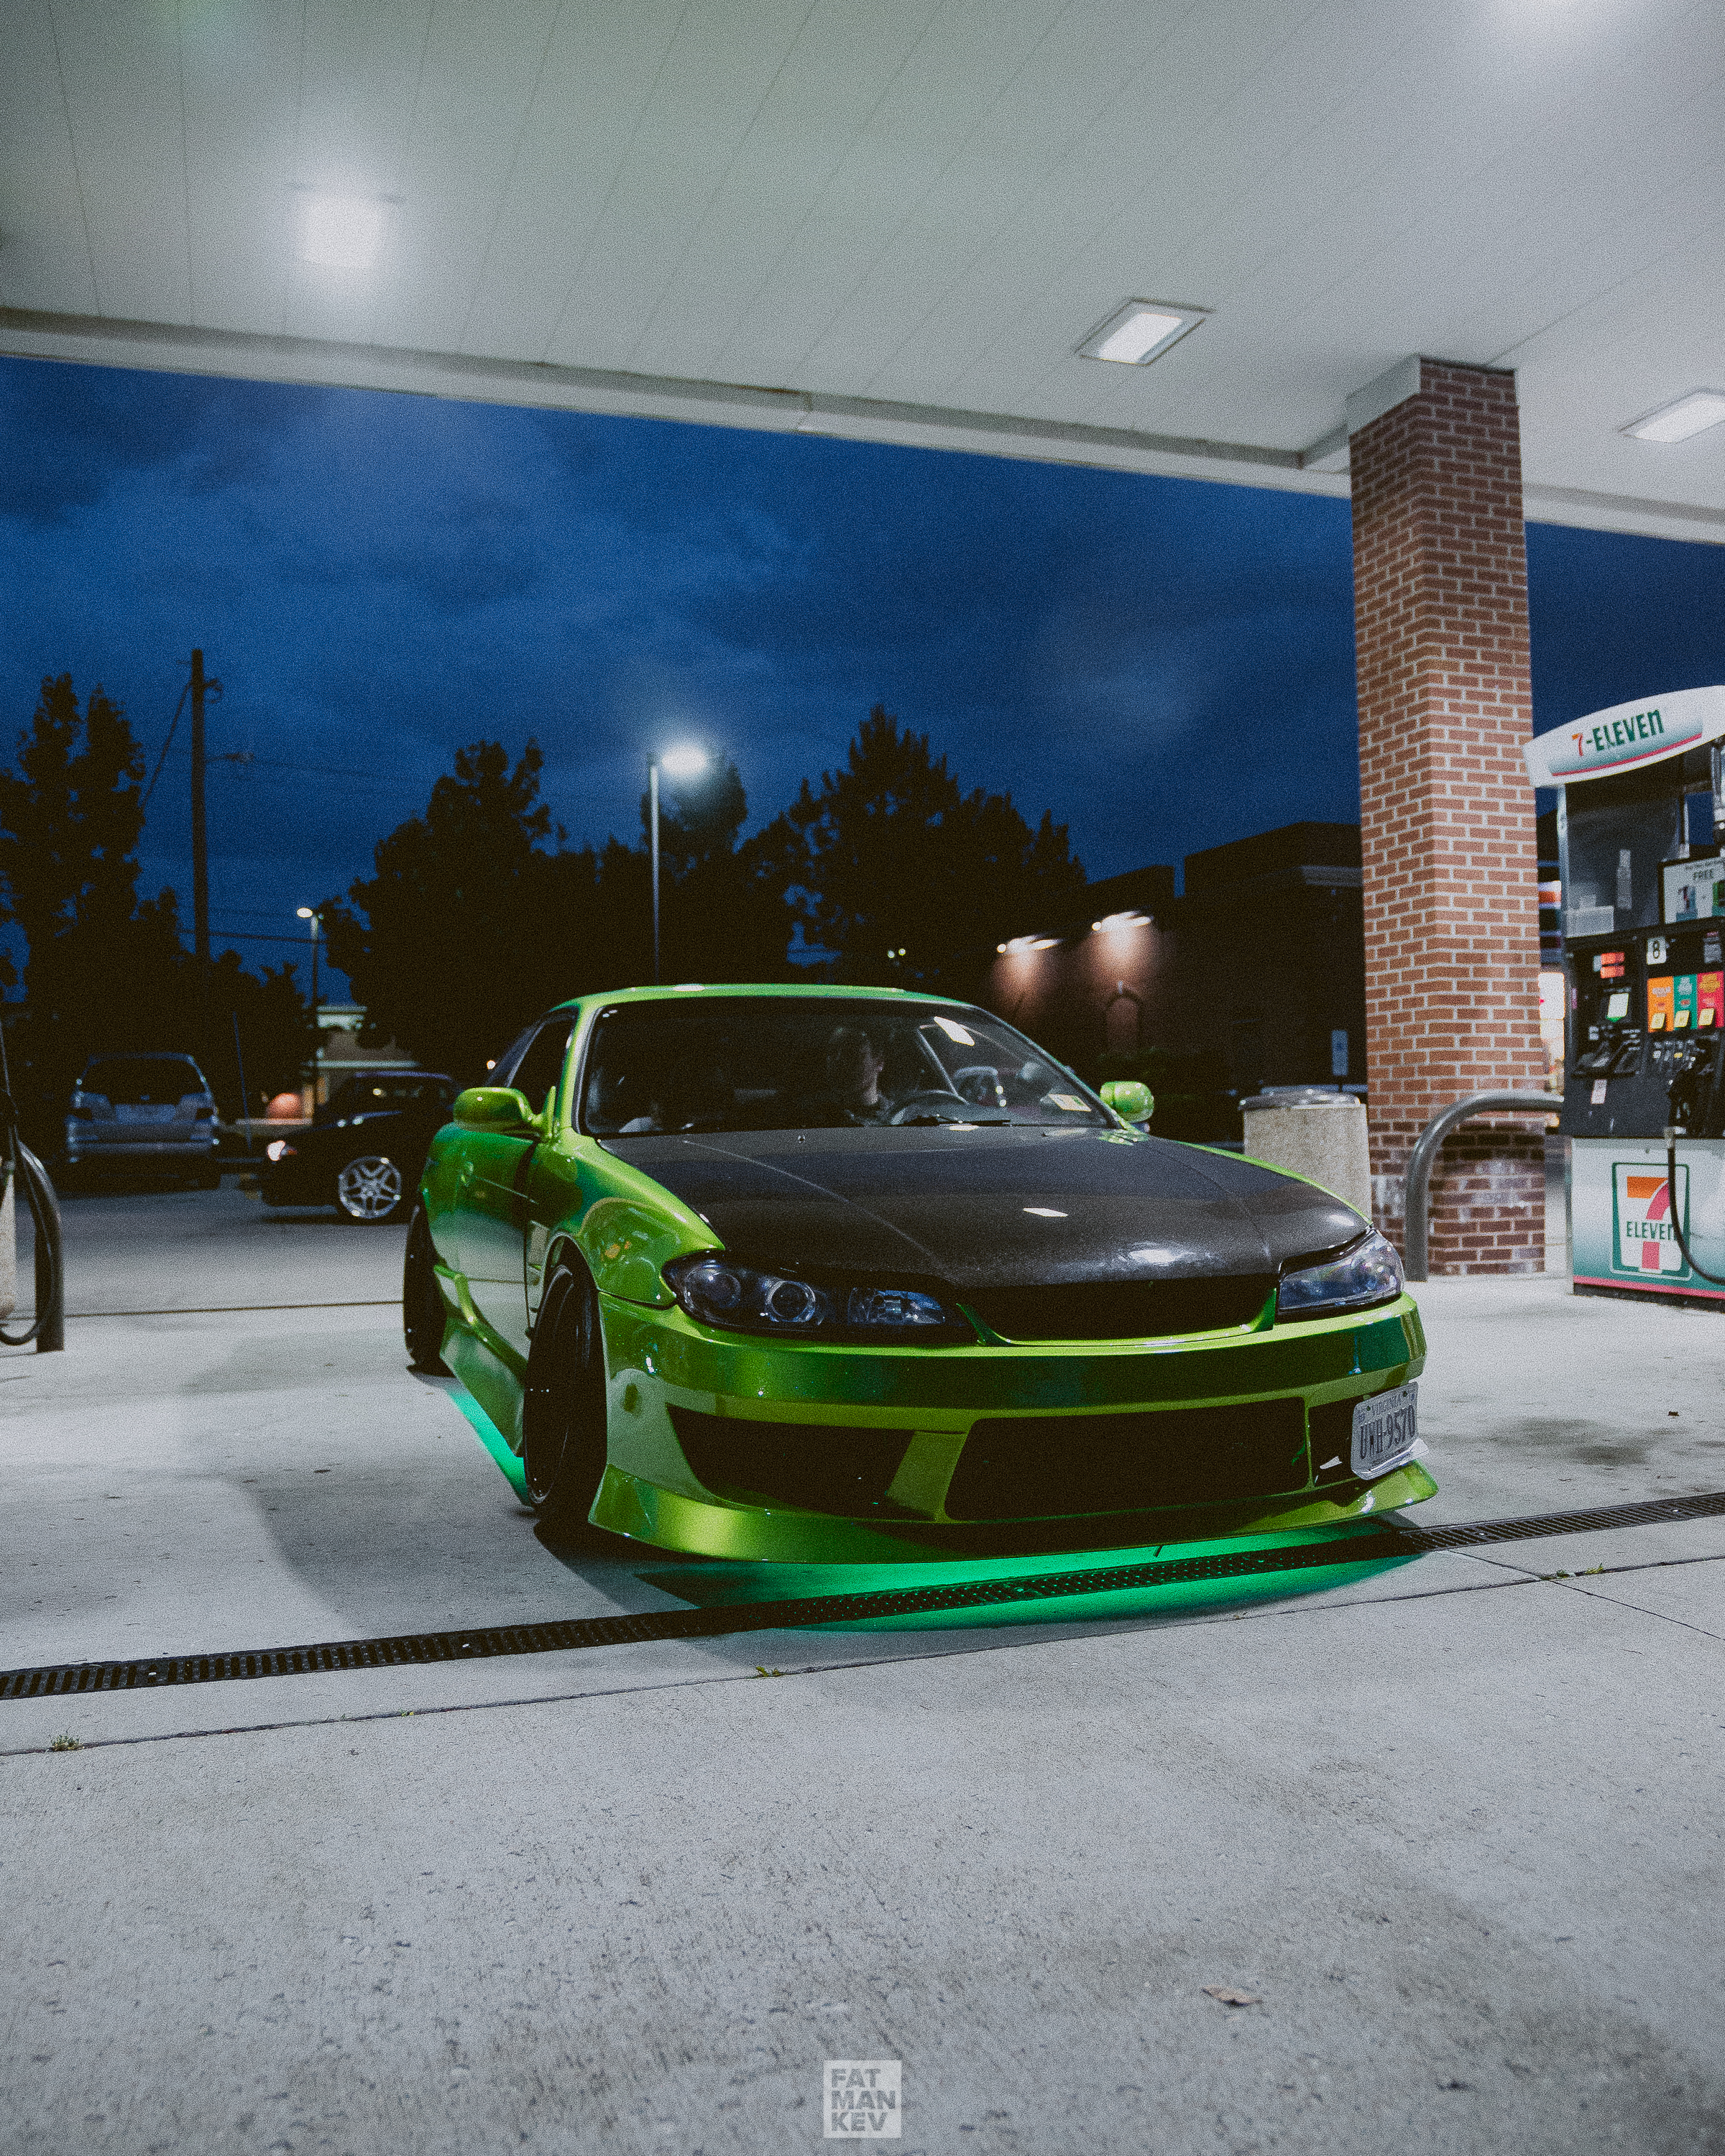 Ridge, from Wolf Clan Garage, stopping by in his amazing S14.5. Take a look at the paint up close next time, it's unbelievable. Don't forget to take a peep at the bay too! All work done by the man himself.